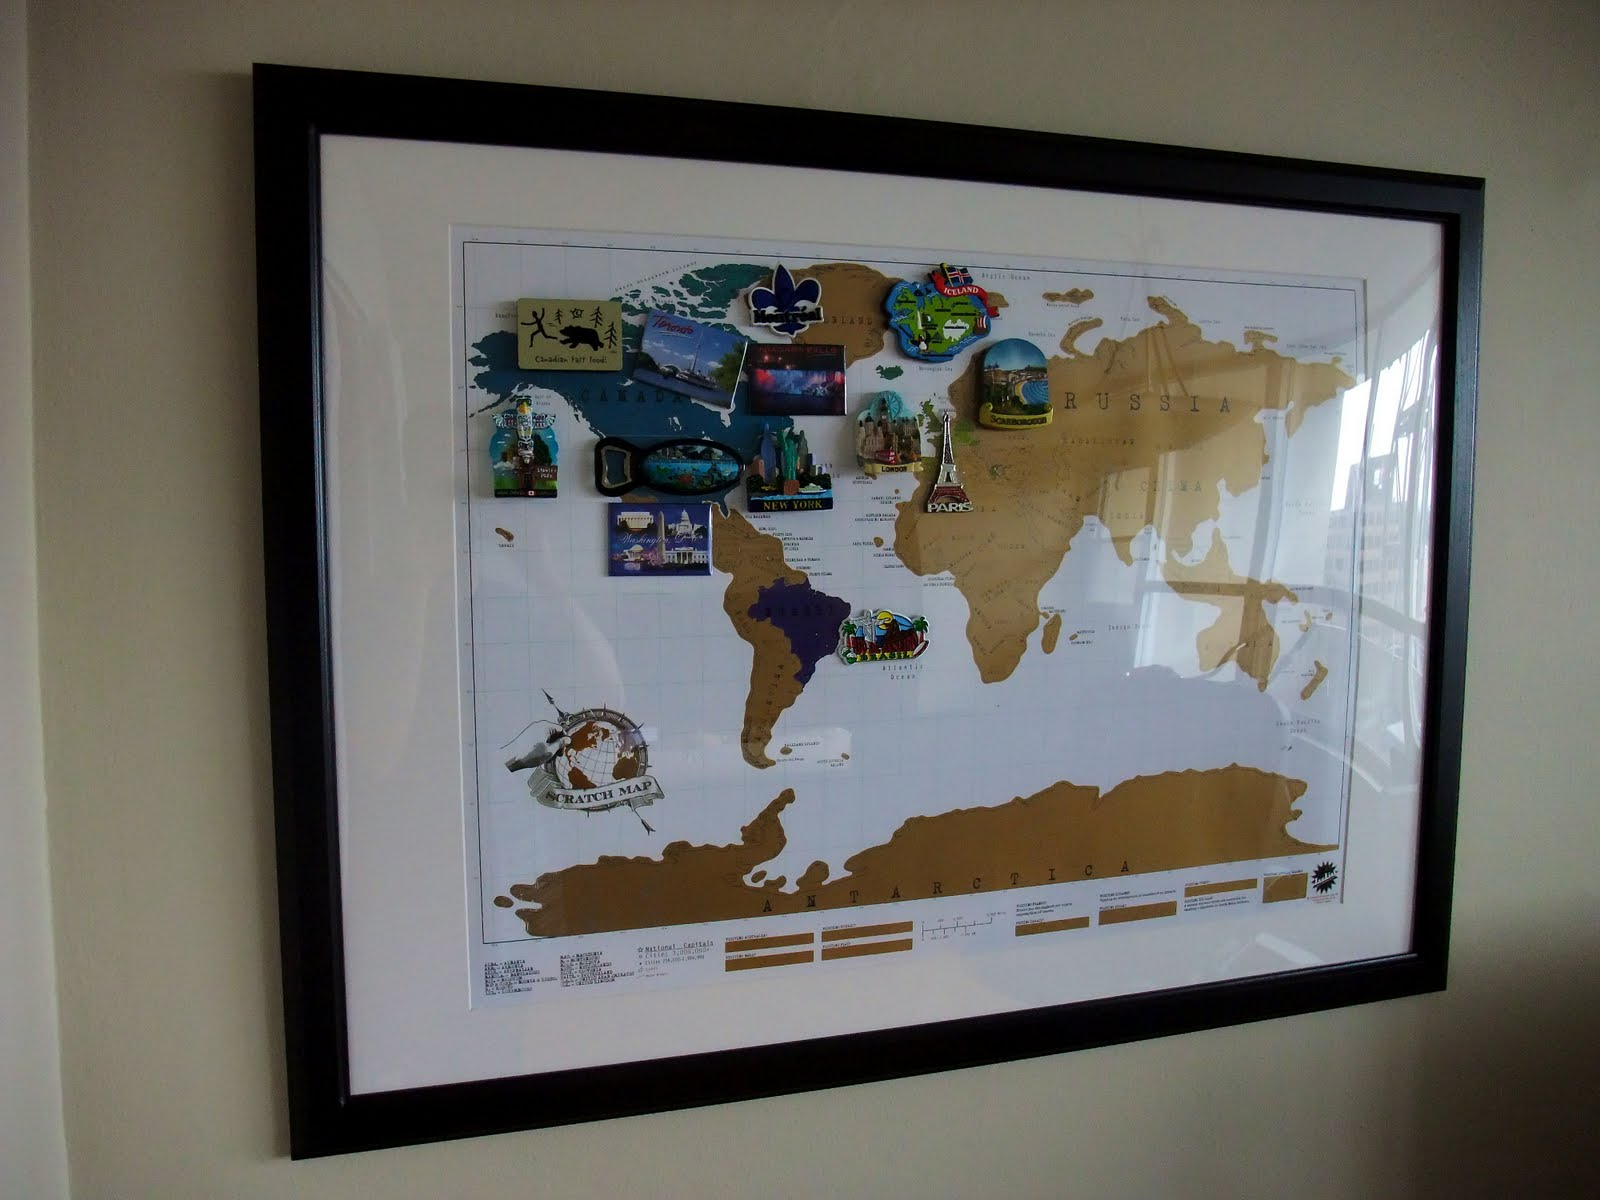 Hannah Wrapped Up: Scratch Map